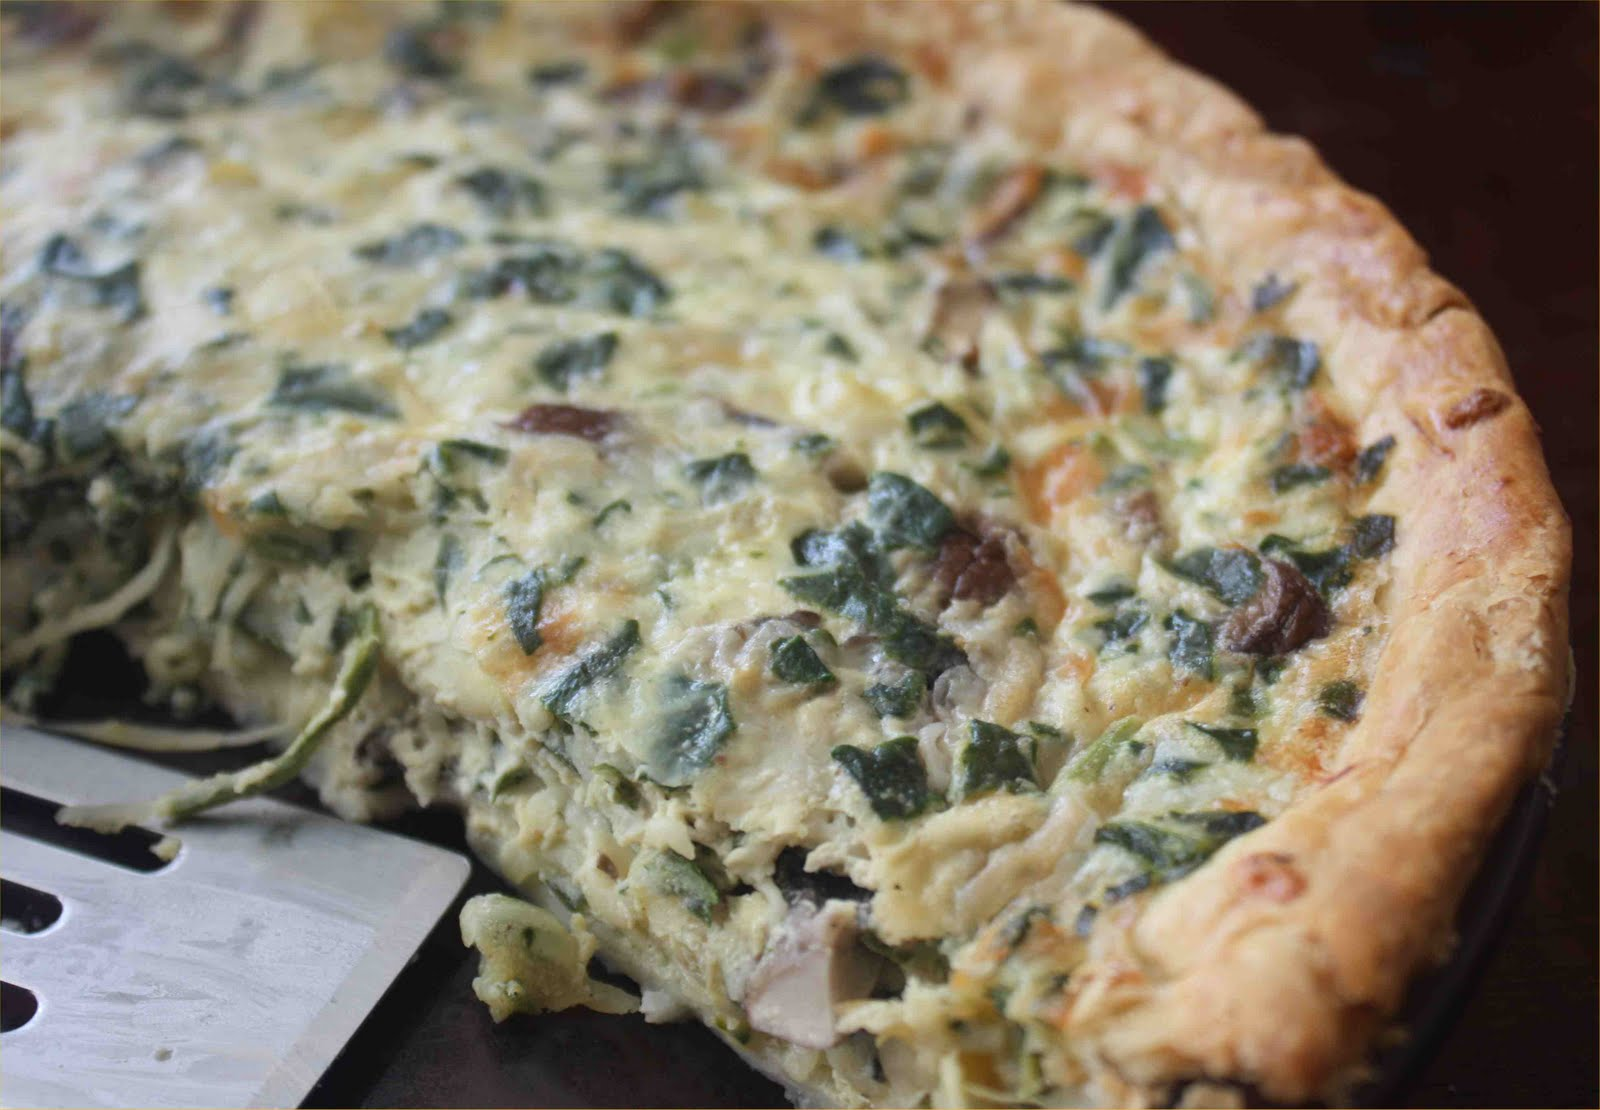 ... and Jen Dish: MEATLESS MONDAY - Spinach Artichoke Mushroom Quiche